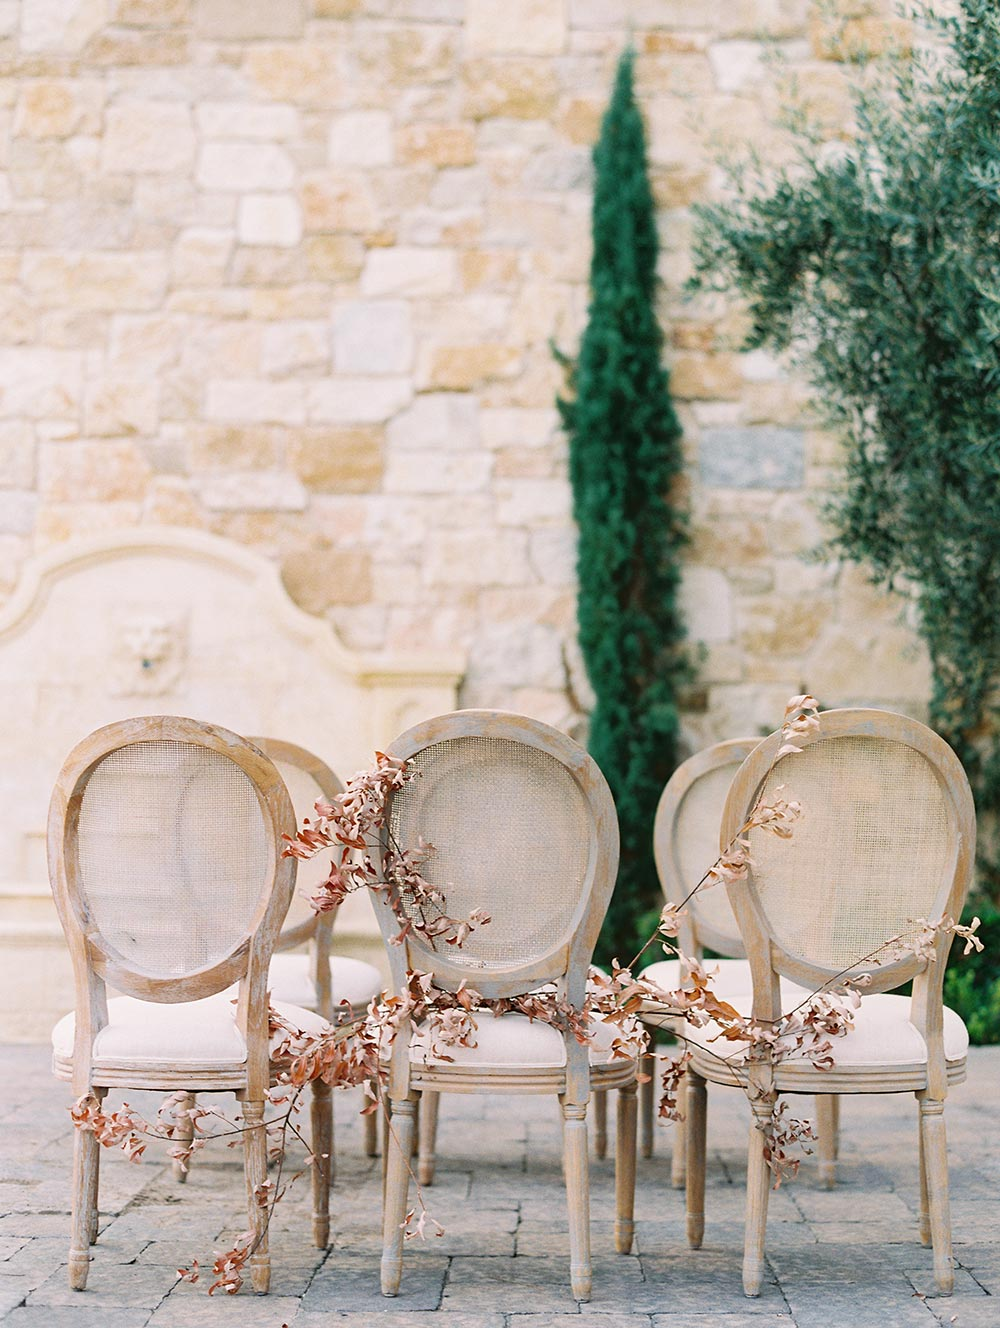 dior chairs wedding ceremony